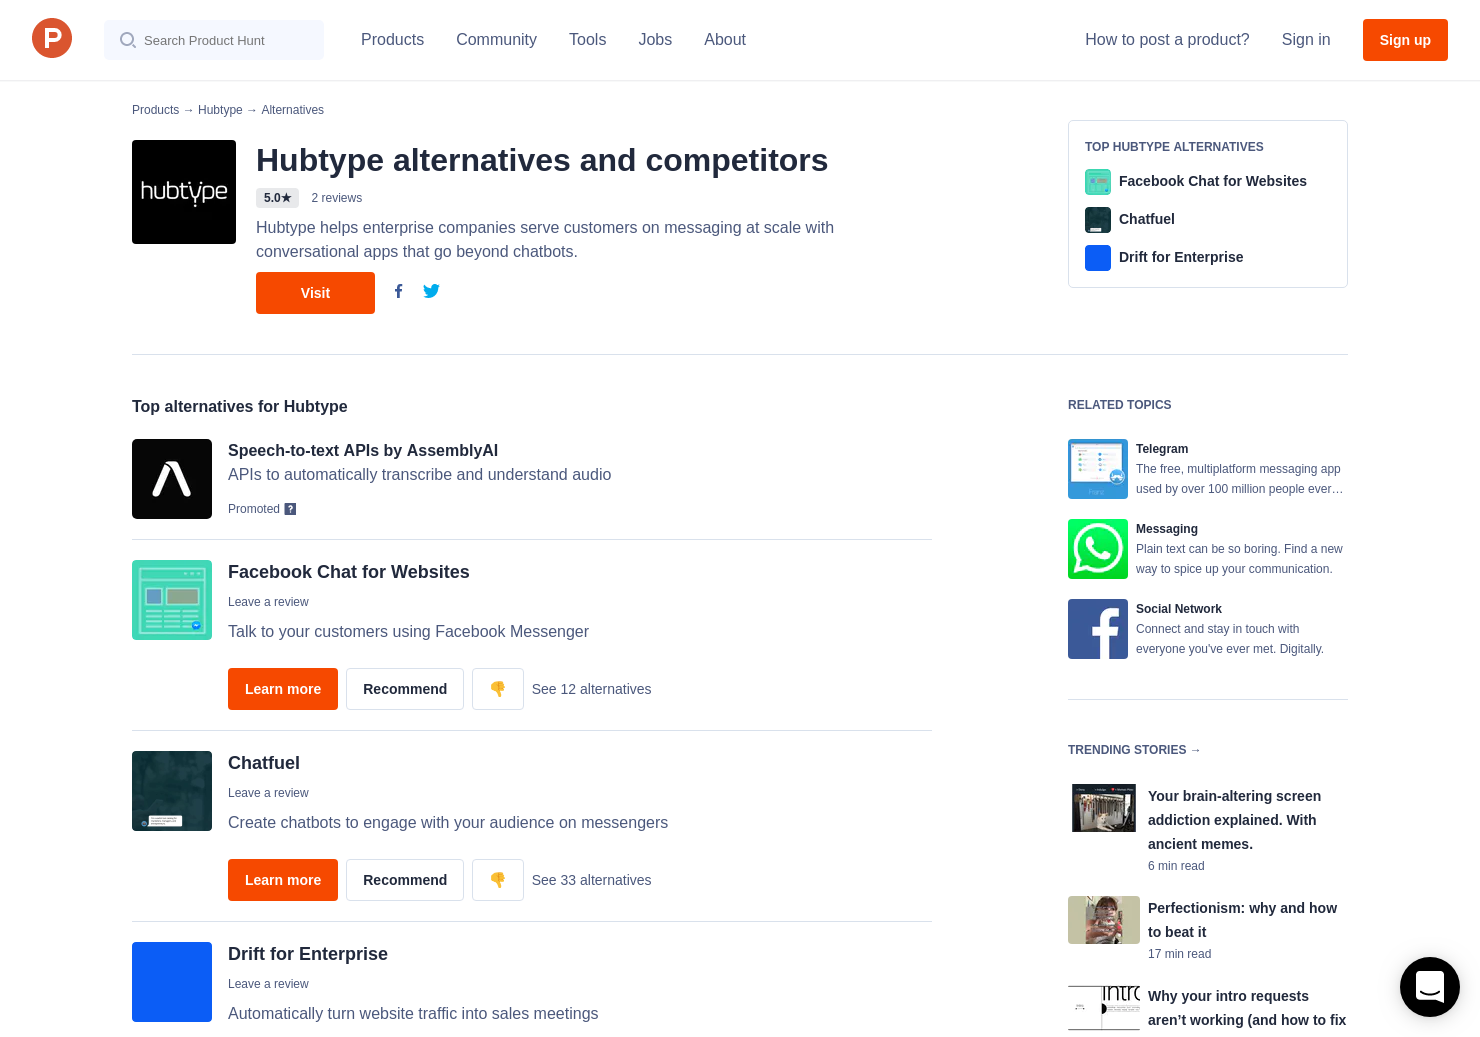 7 Alternatives to Hubtype | Product Hunt